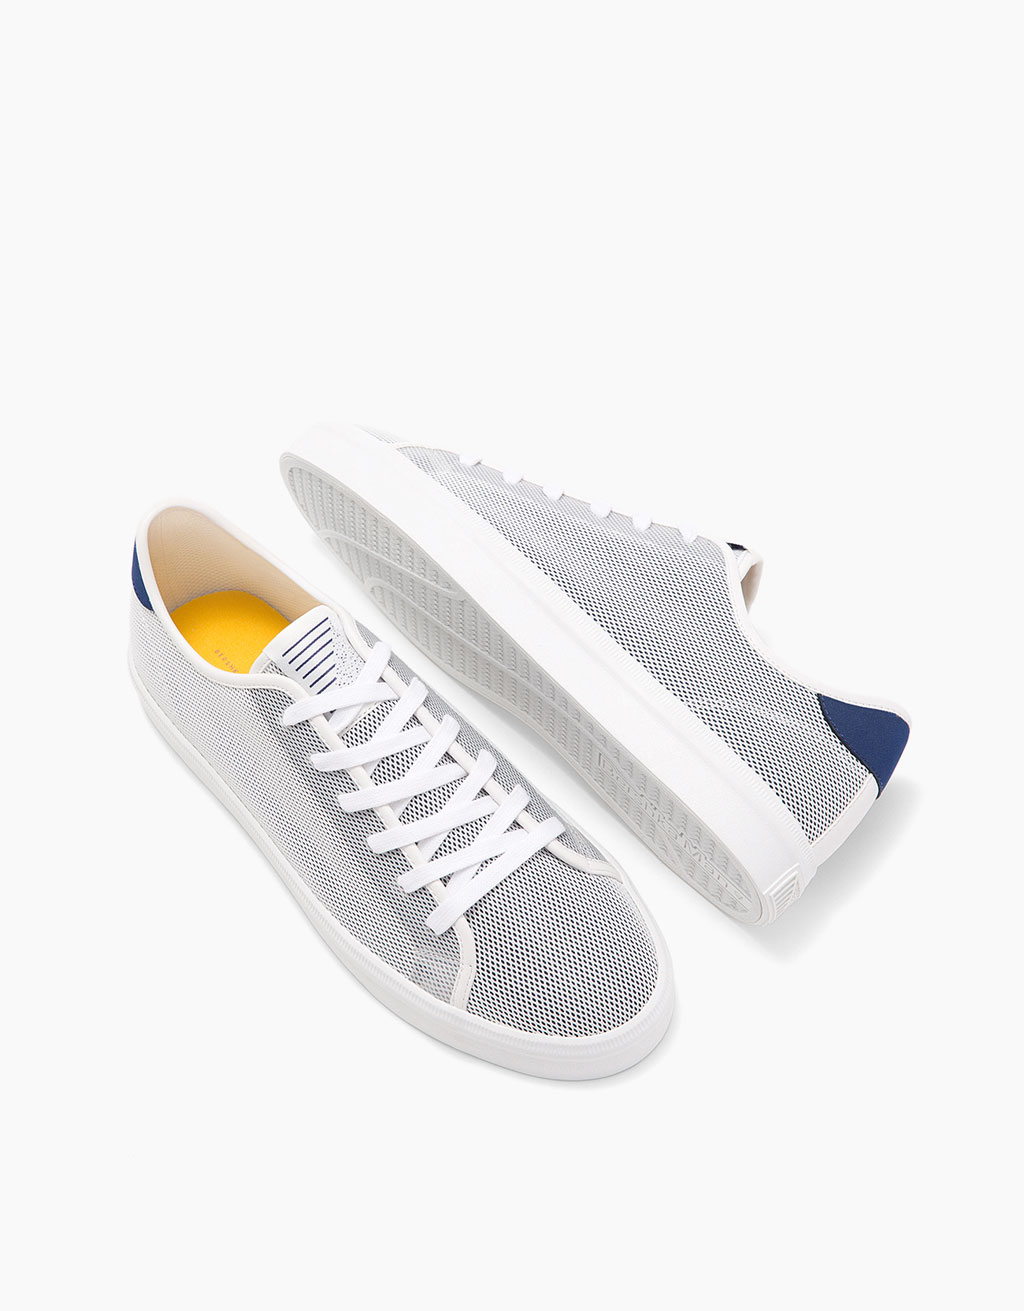 Men's mesh sneakers with coloured heel